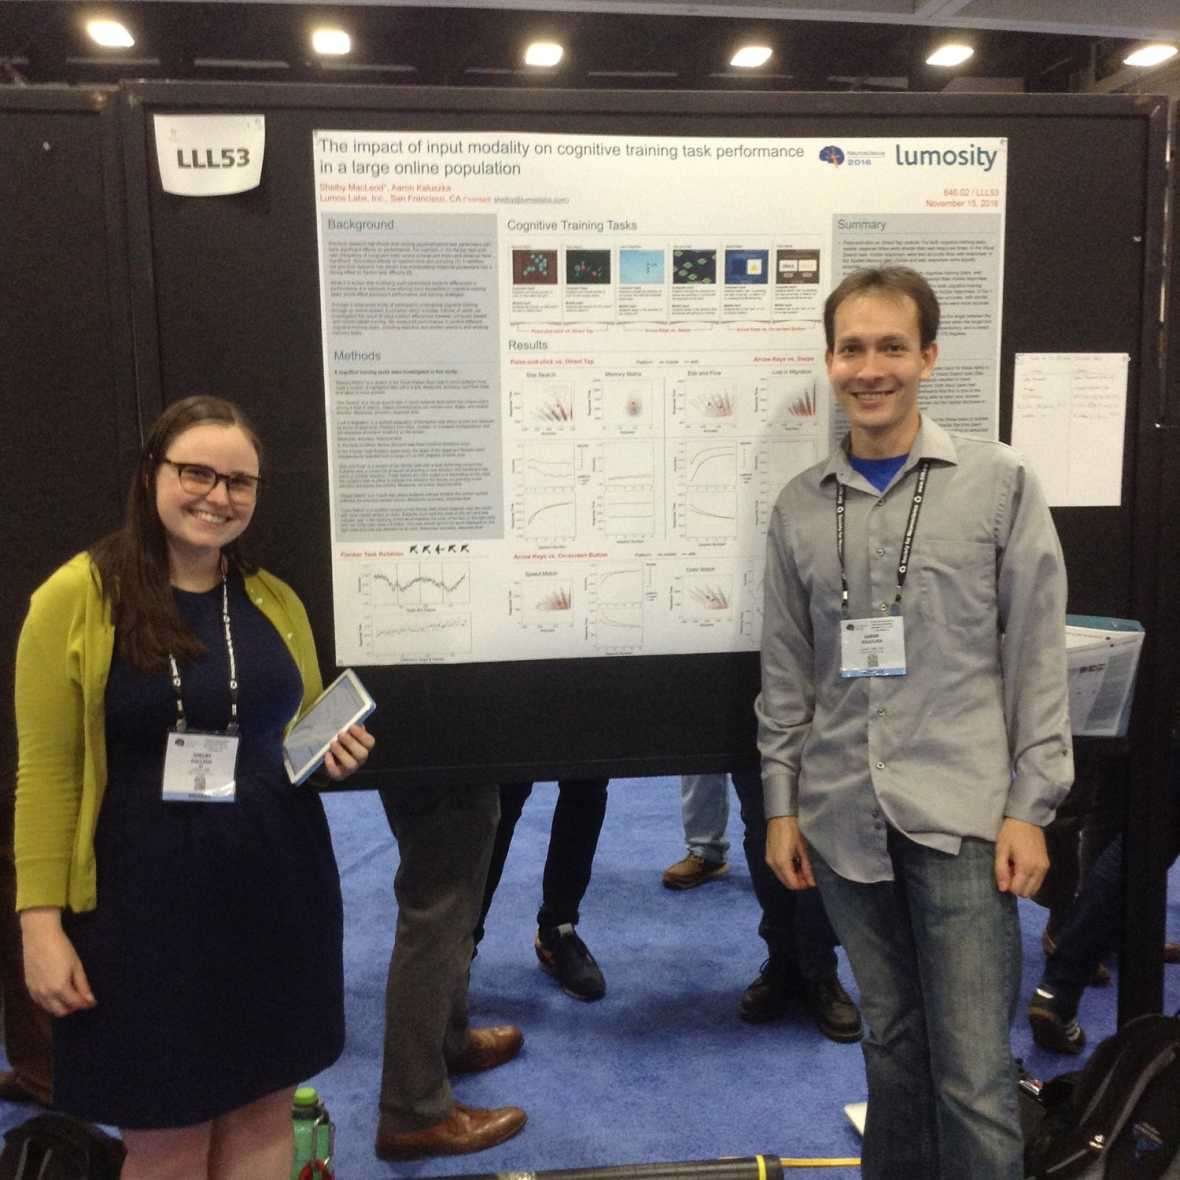 Lumosity at the 2016 Society for Neuroscience Annual Meeting 1180x1180